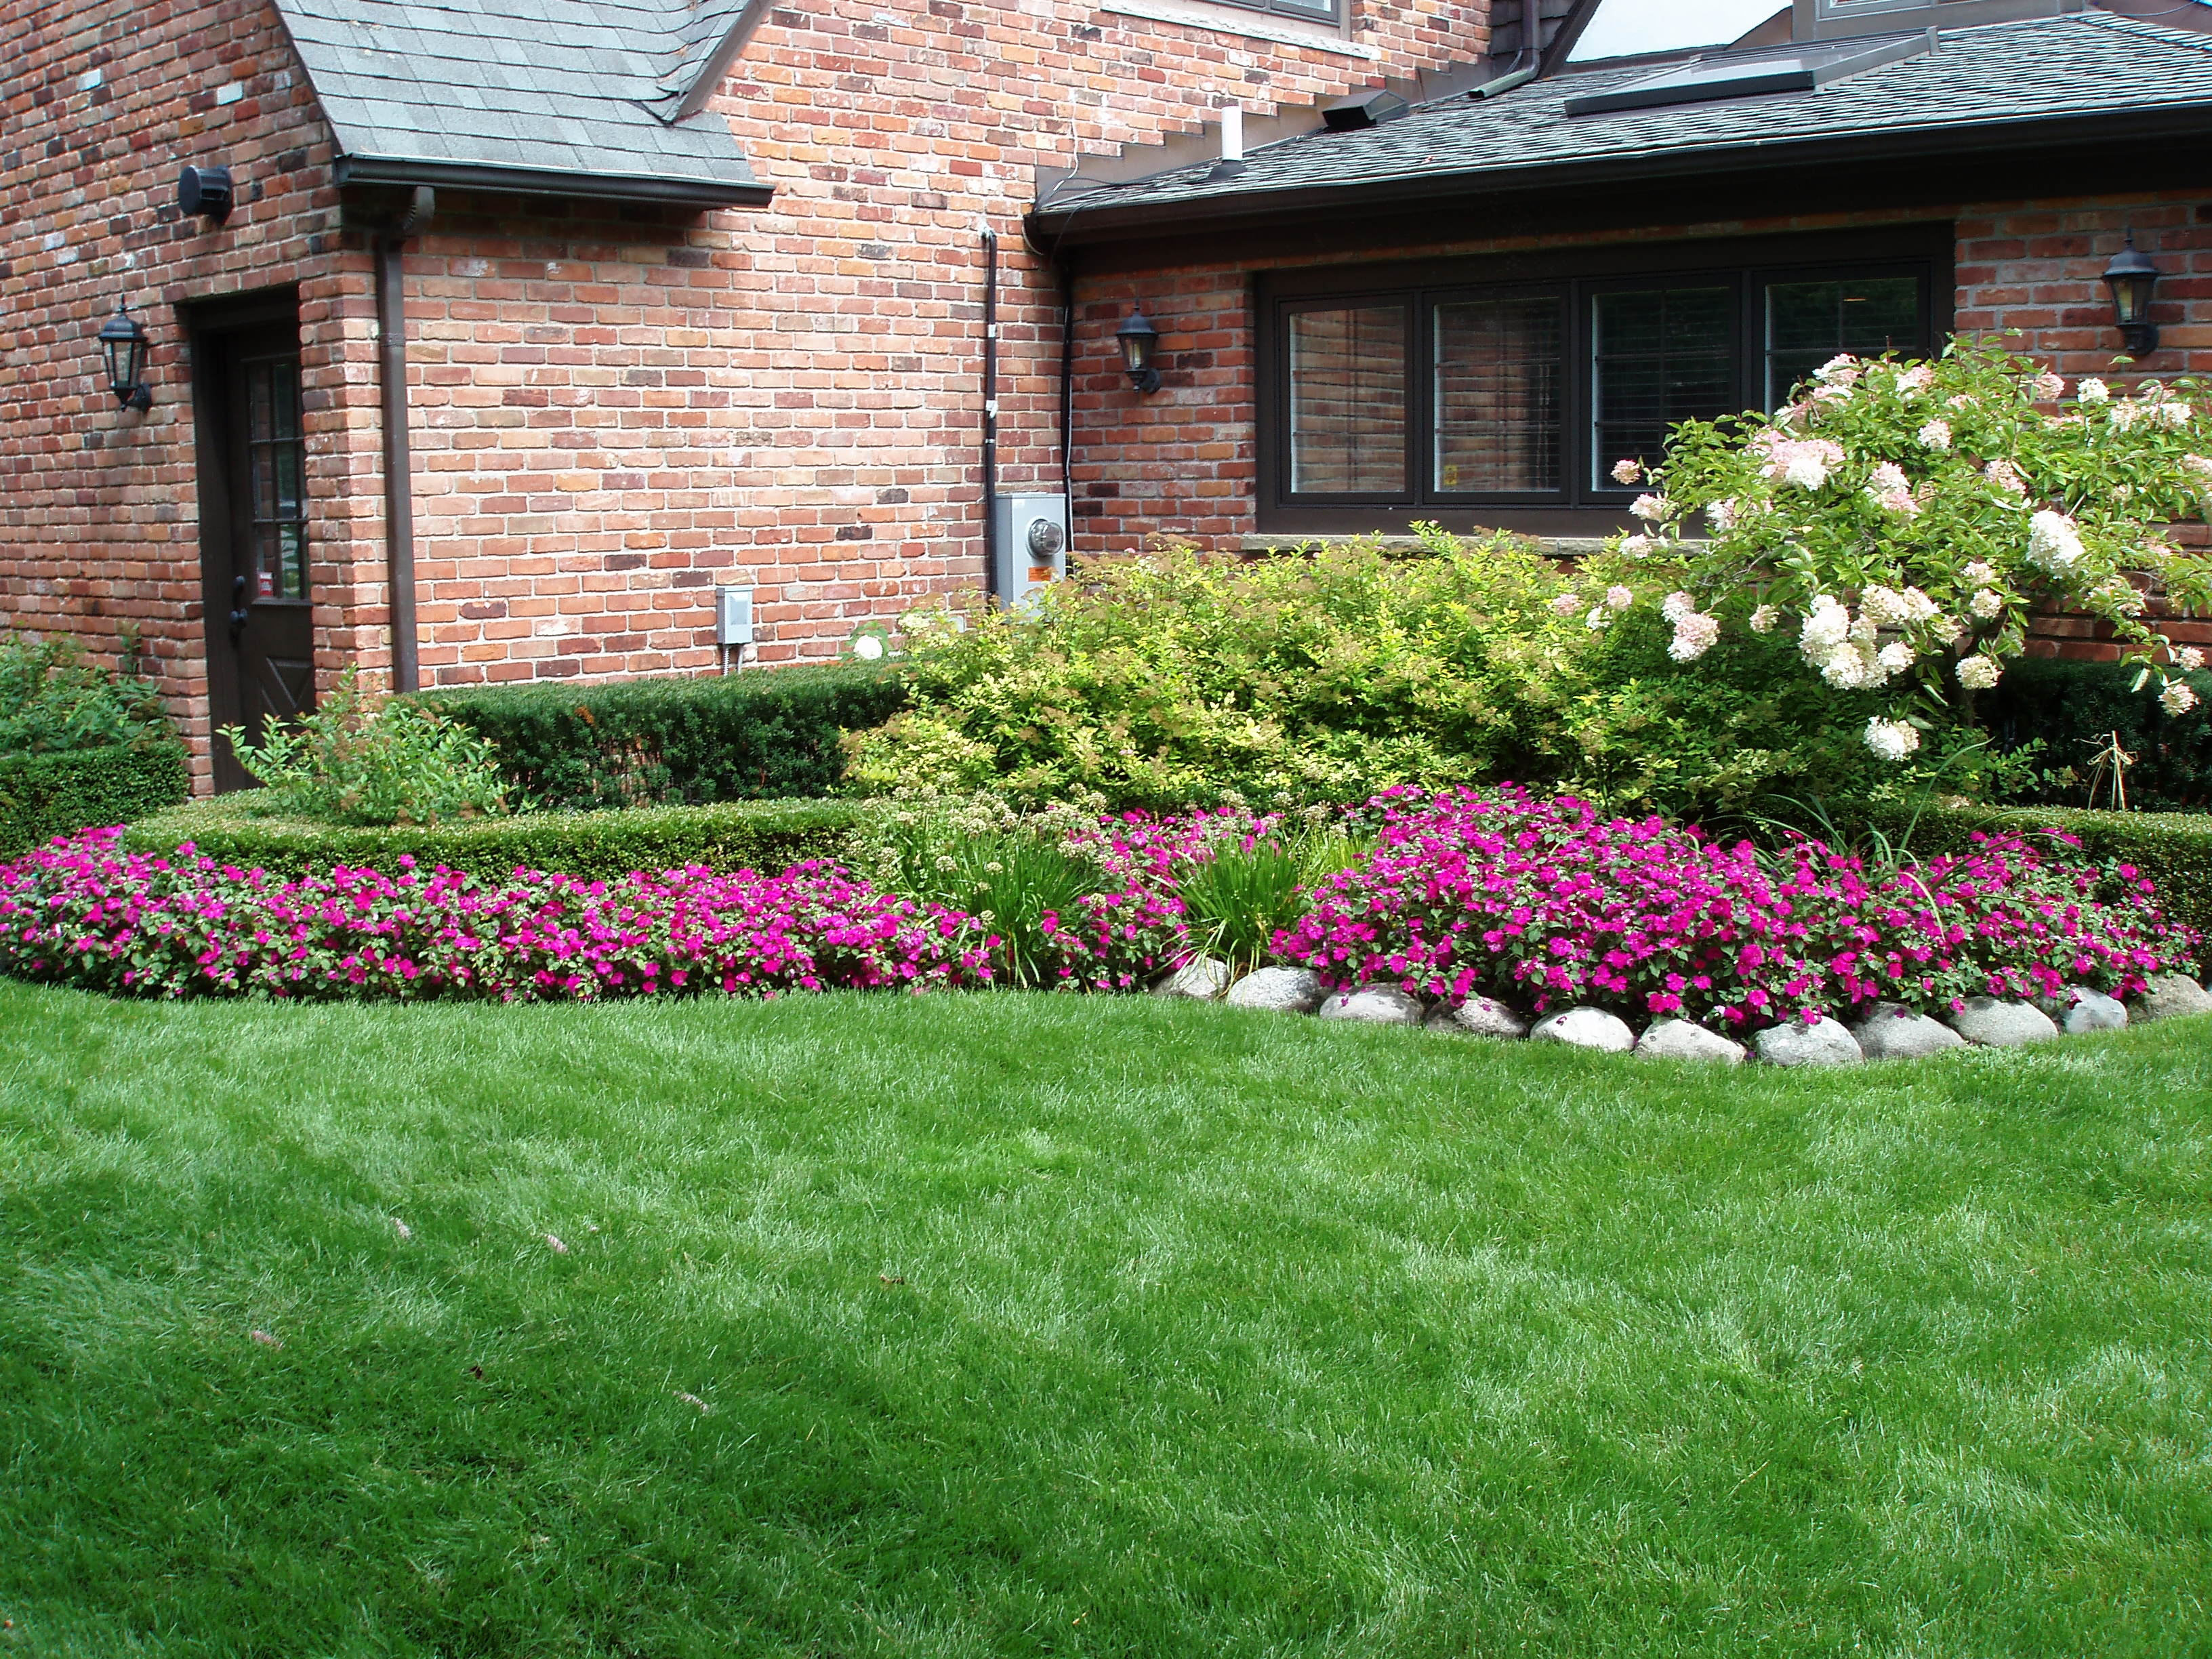 Perennials total lawn care inc full lawn maintenance for Home backyard landscaping ideas